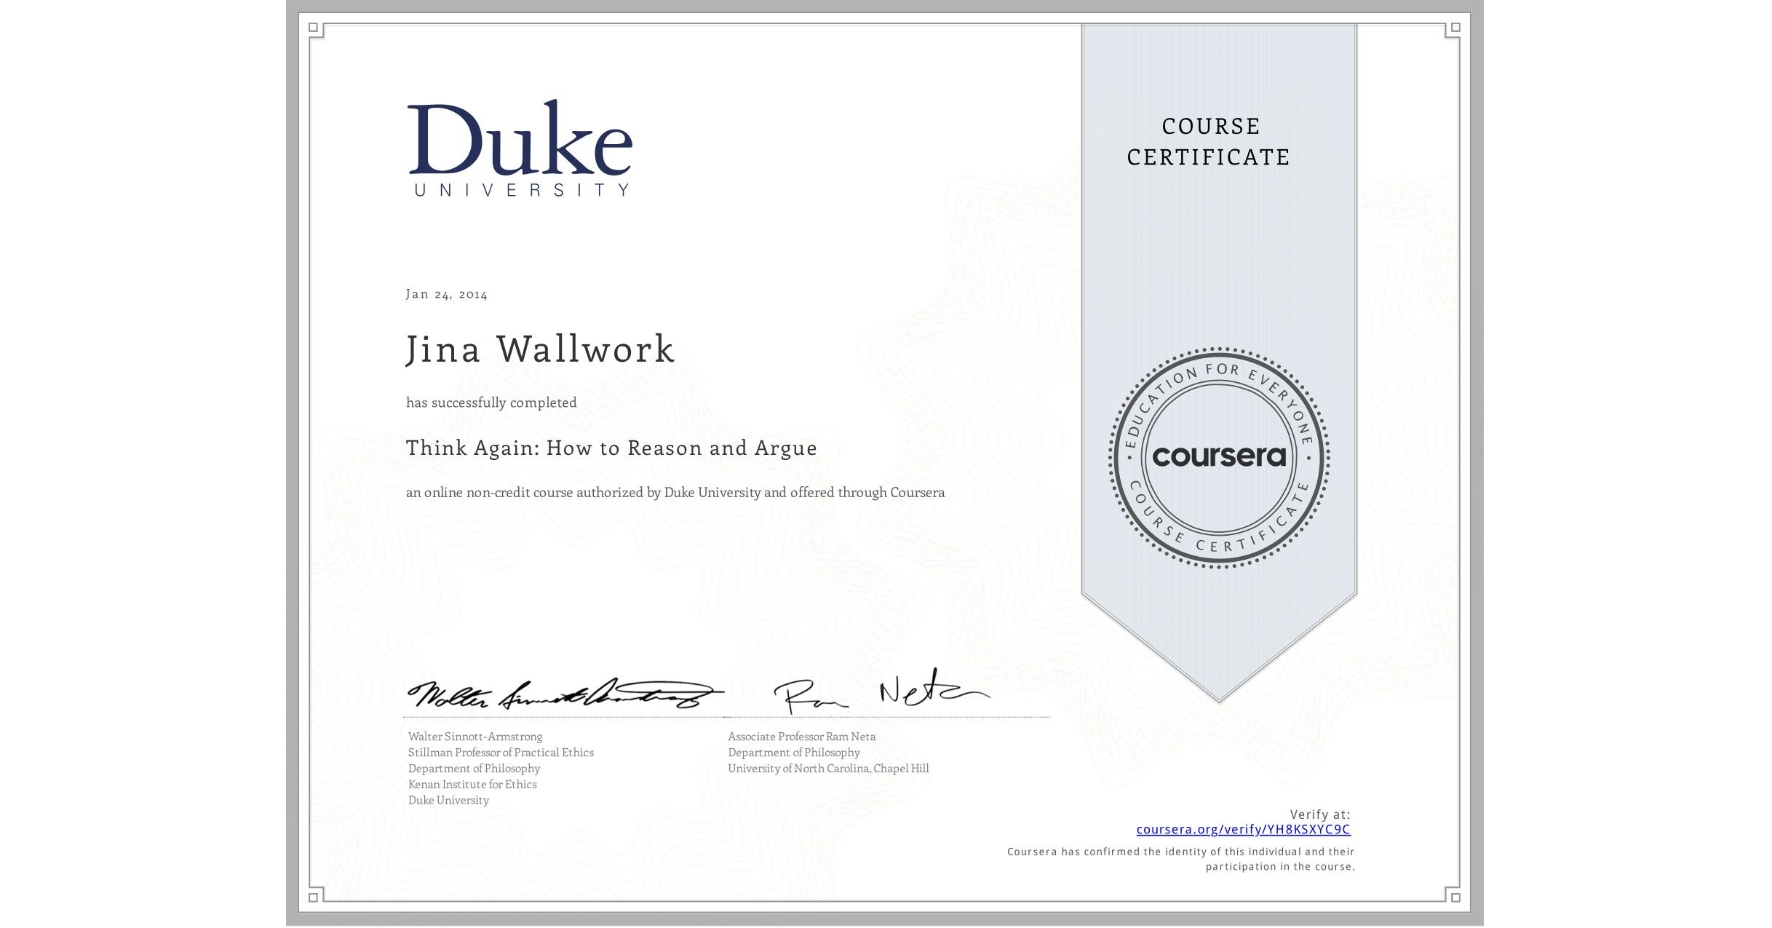 View certificate for Jina Wallwork, Think Again: How to Reason and Argue, an online non-credit course authorized by Duke University and offered through Coursera